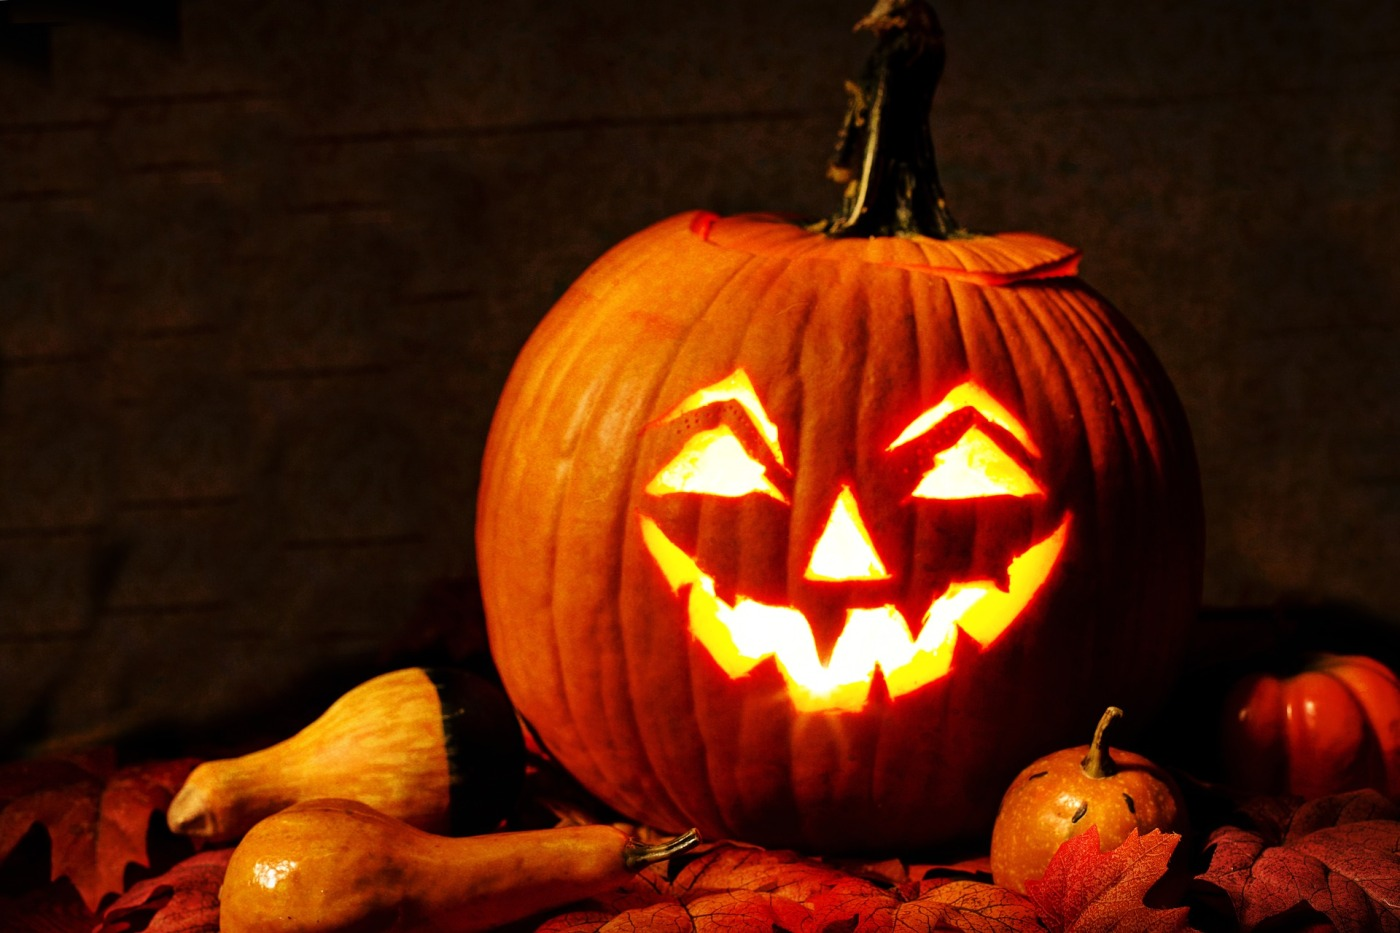 Image of a carved Halloween pumpkin